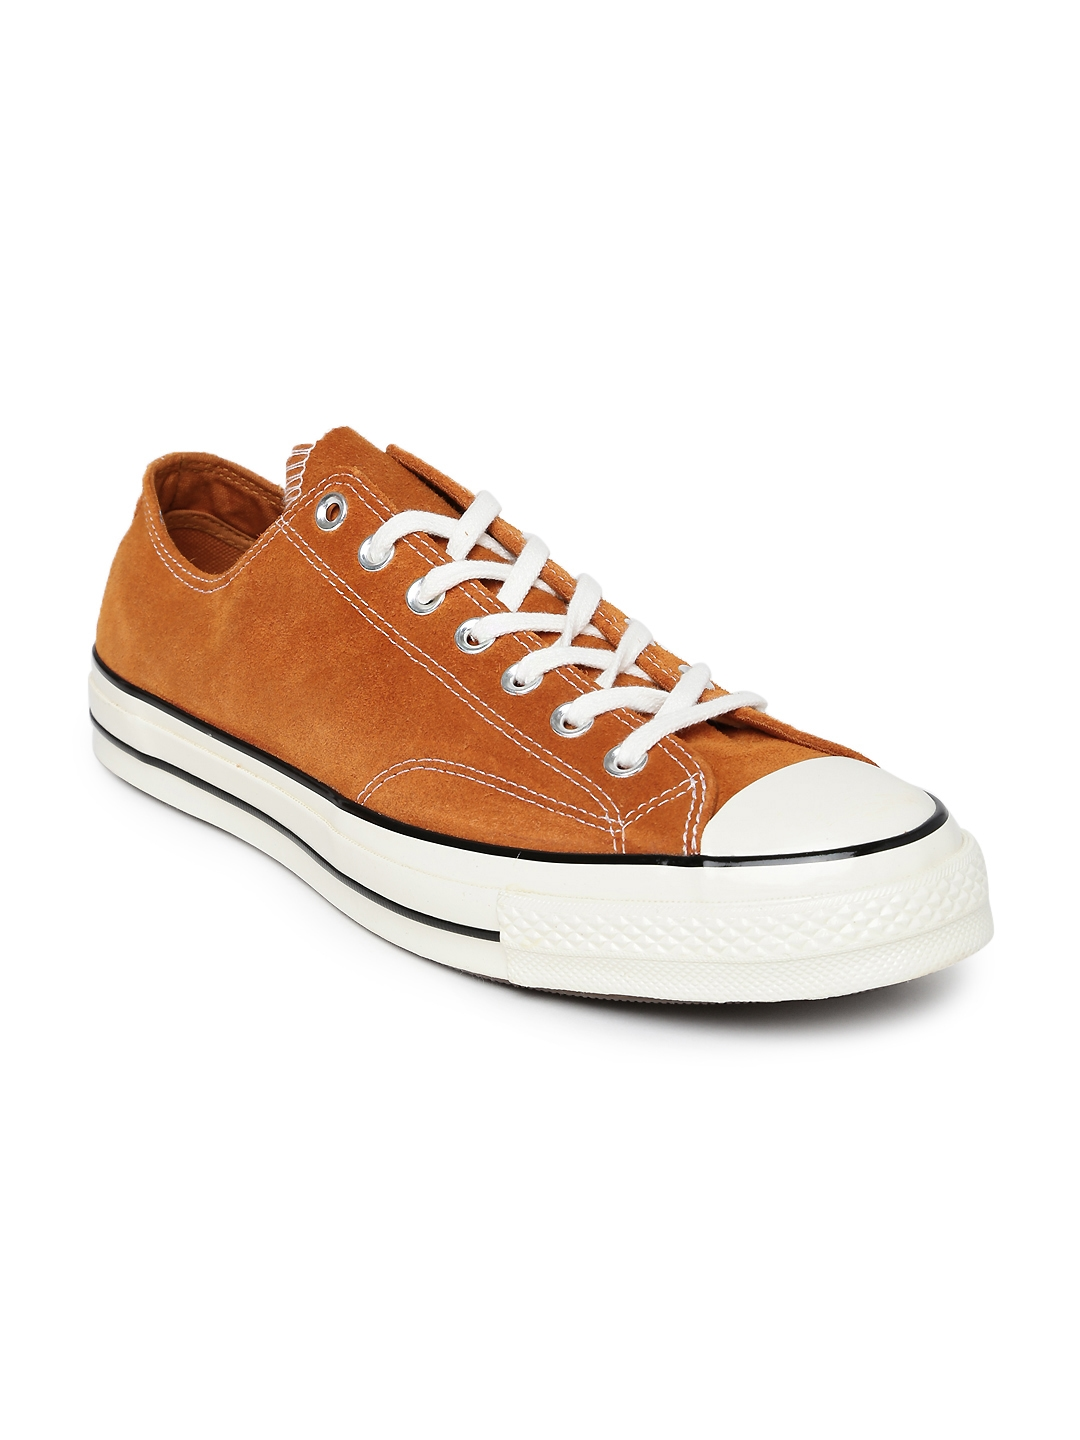 b78c58fc2bc017 Buy Converse Unisex Orange Suede Sneakers - Casual Shoes for Unisex ...